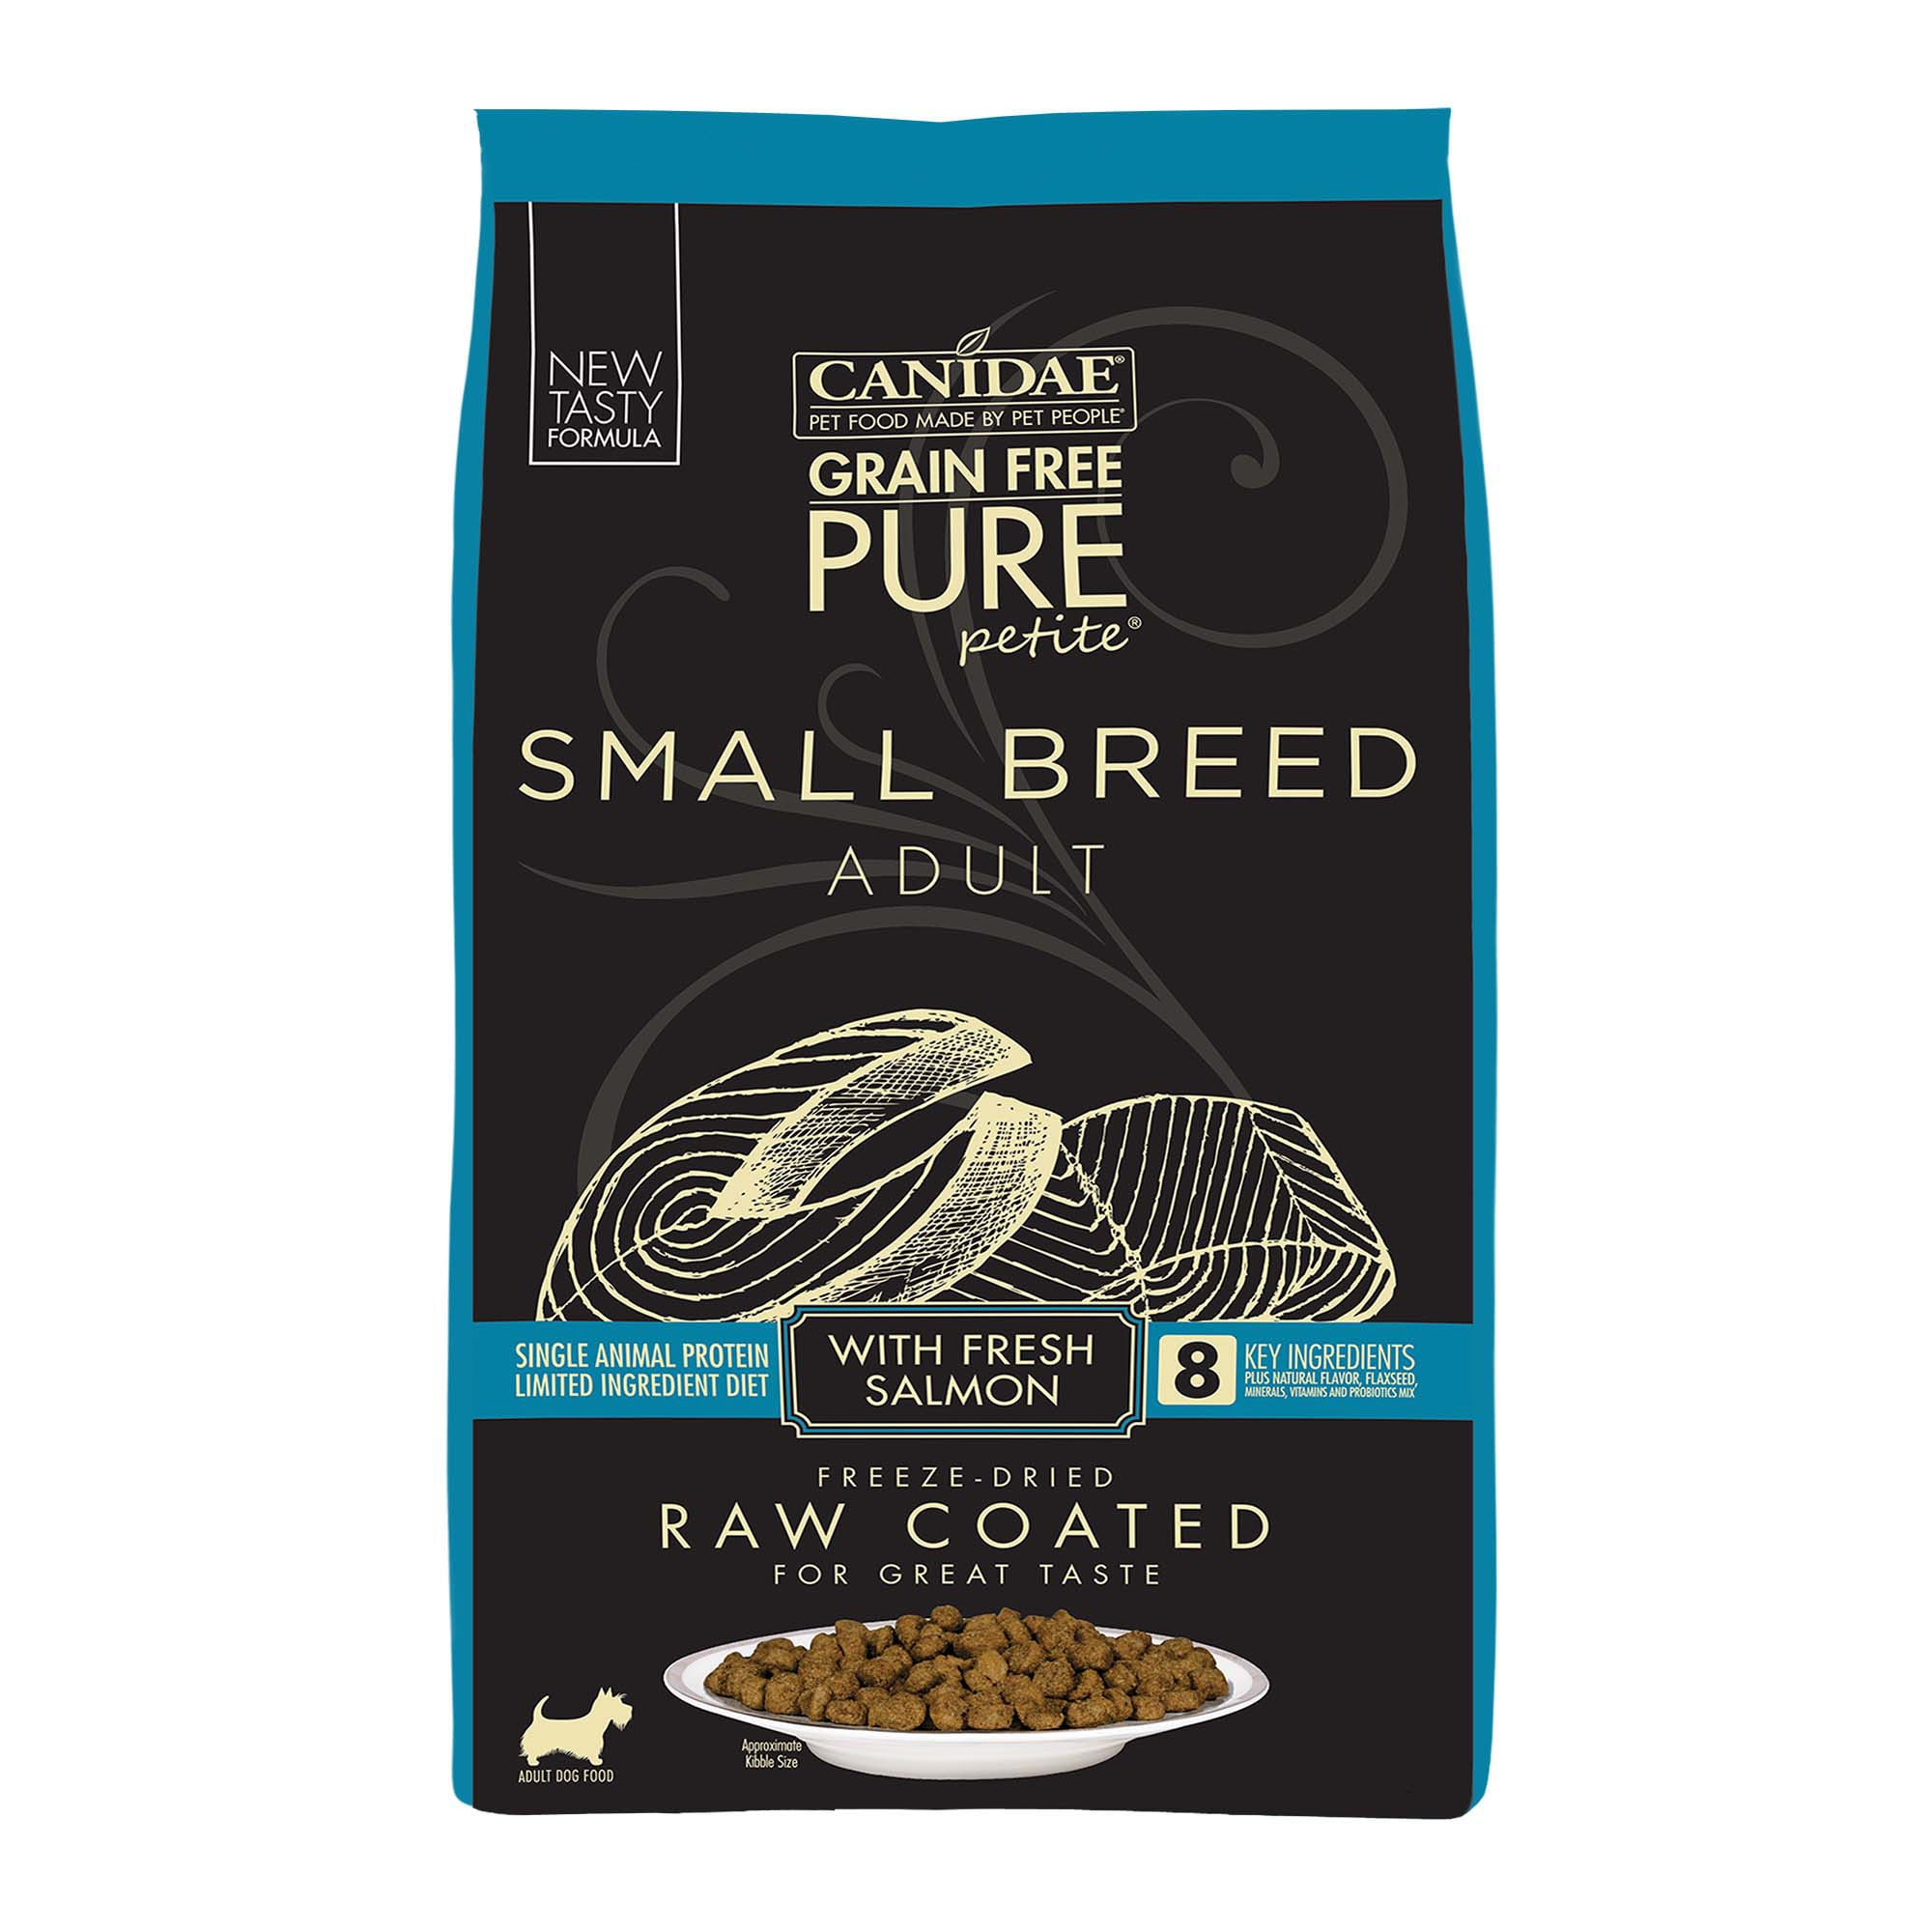 Canidae PURE Grain Free Petite Small Breed Limited Ingredient Diet Raw Coated with Fresh Salmon Dry Dog Food, 10 lbs.